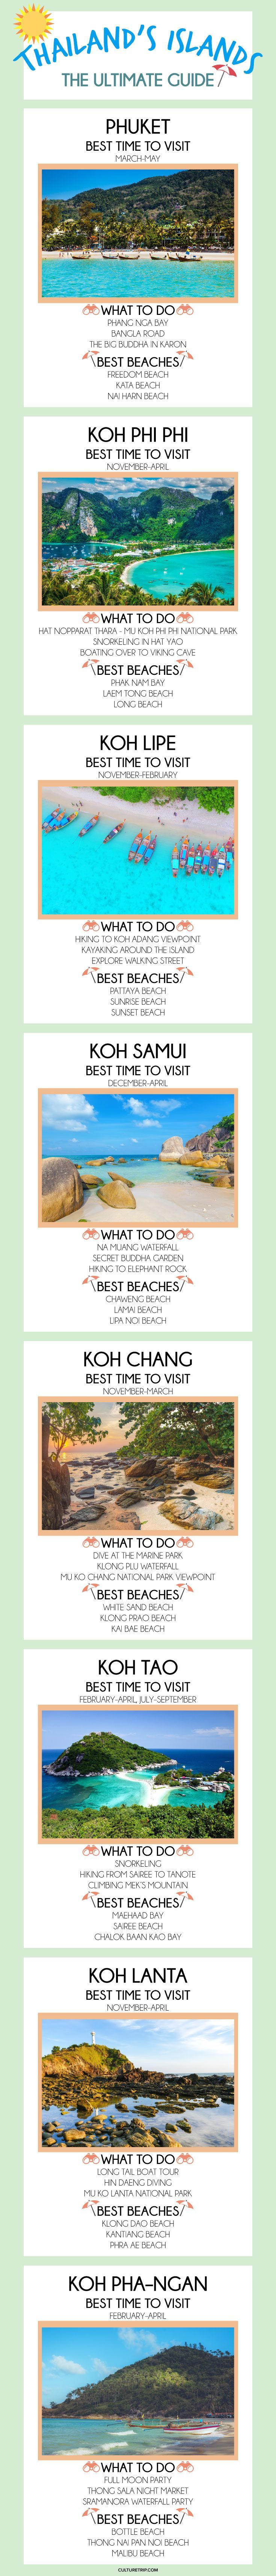 The Ultimate Guide to Thailand's Islands (Infographic)|Pinterest: @theculturetrip